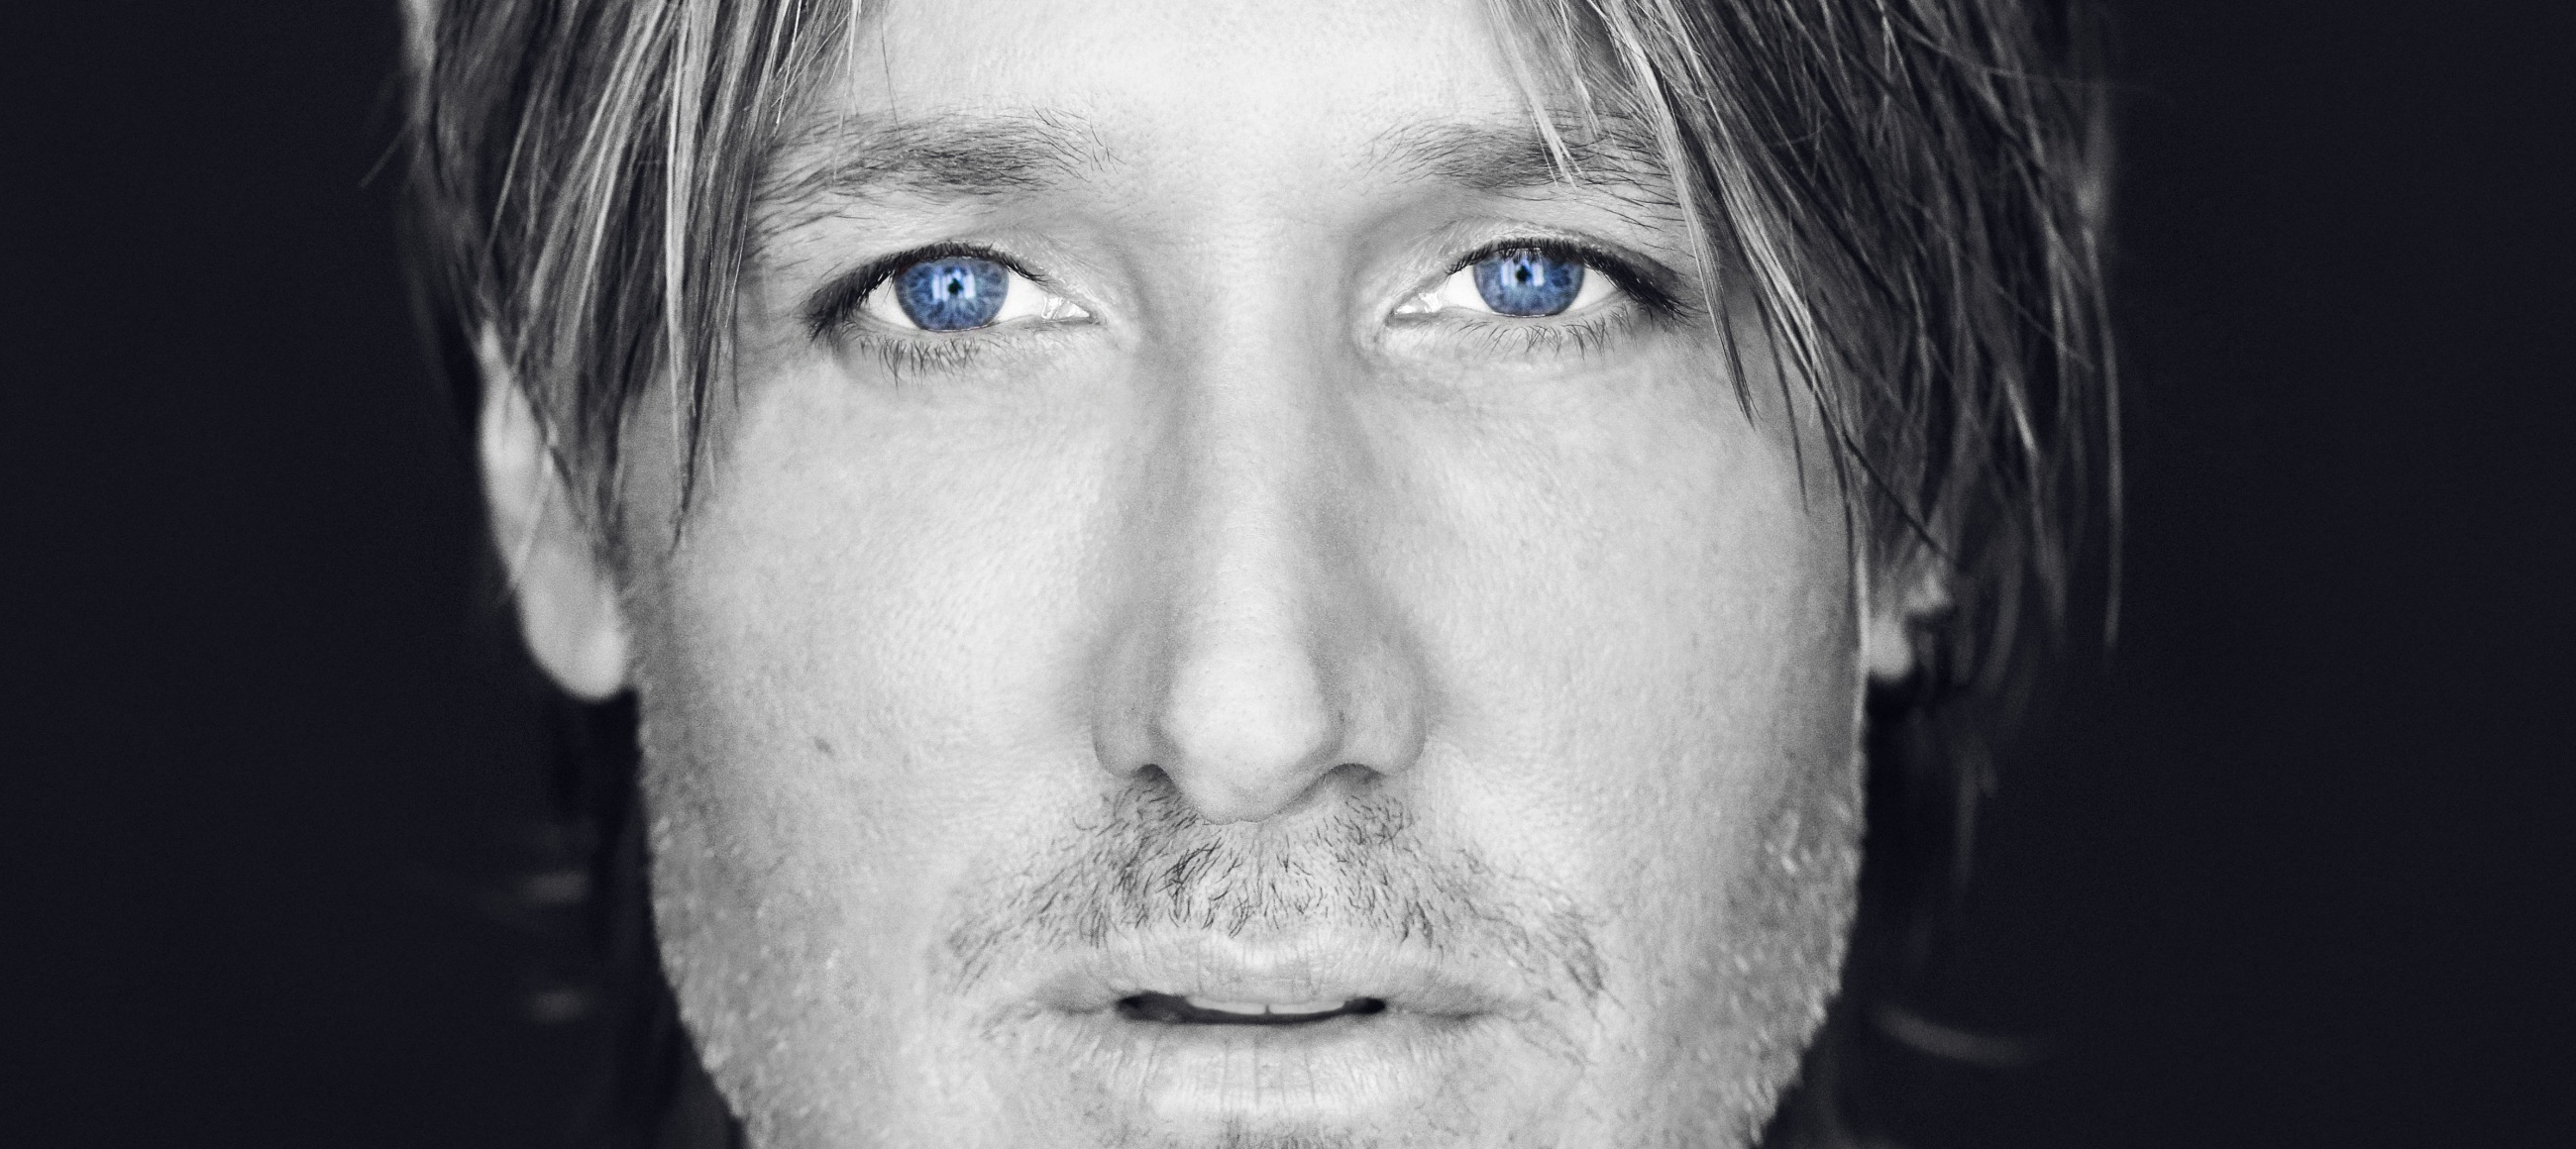 Keith Urban The Fighter